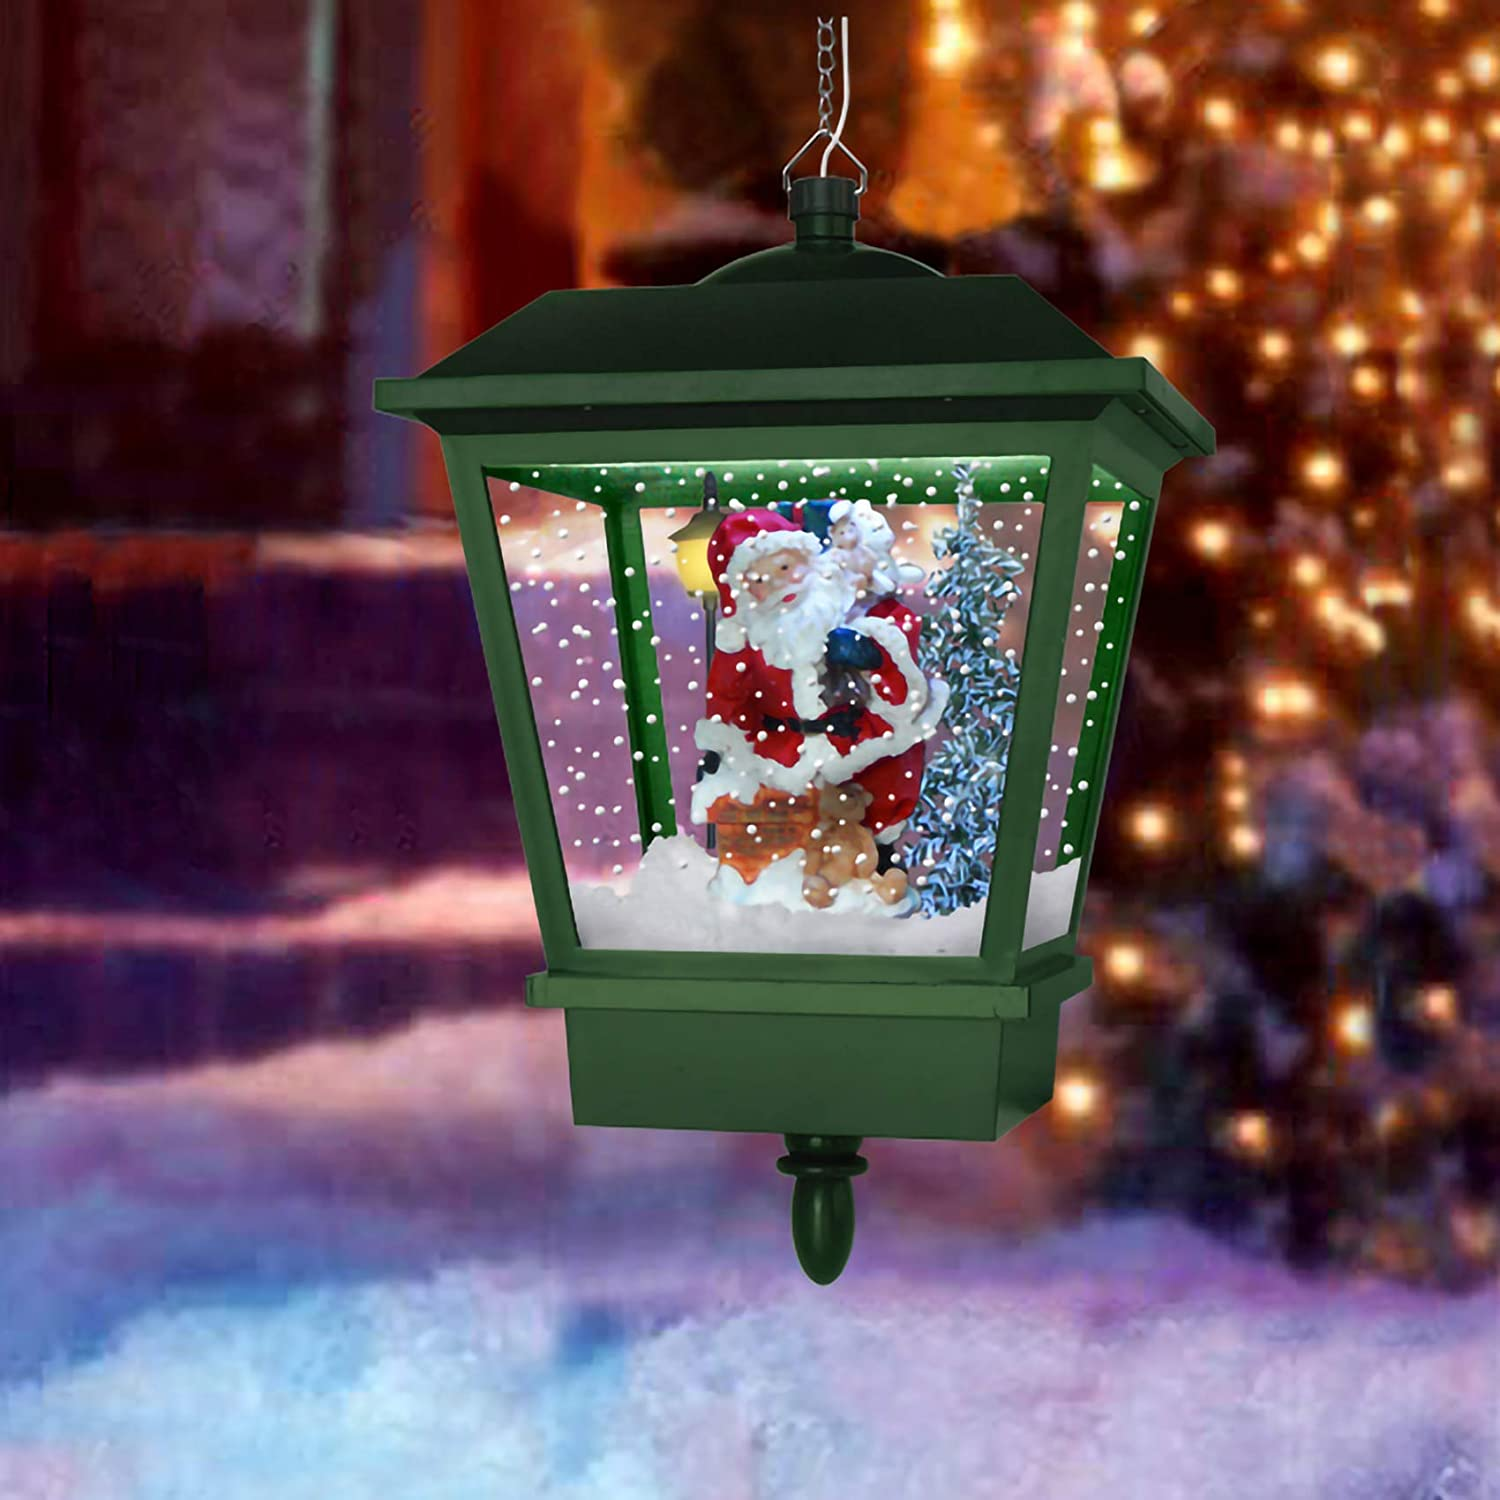 Fraser Hill Farm 23 Musical Tabletop Globe in Green Featuring Santa Scene and Snow Function Christmas Decoration